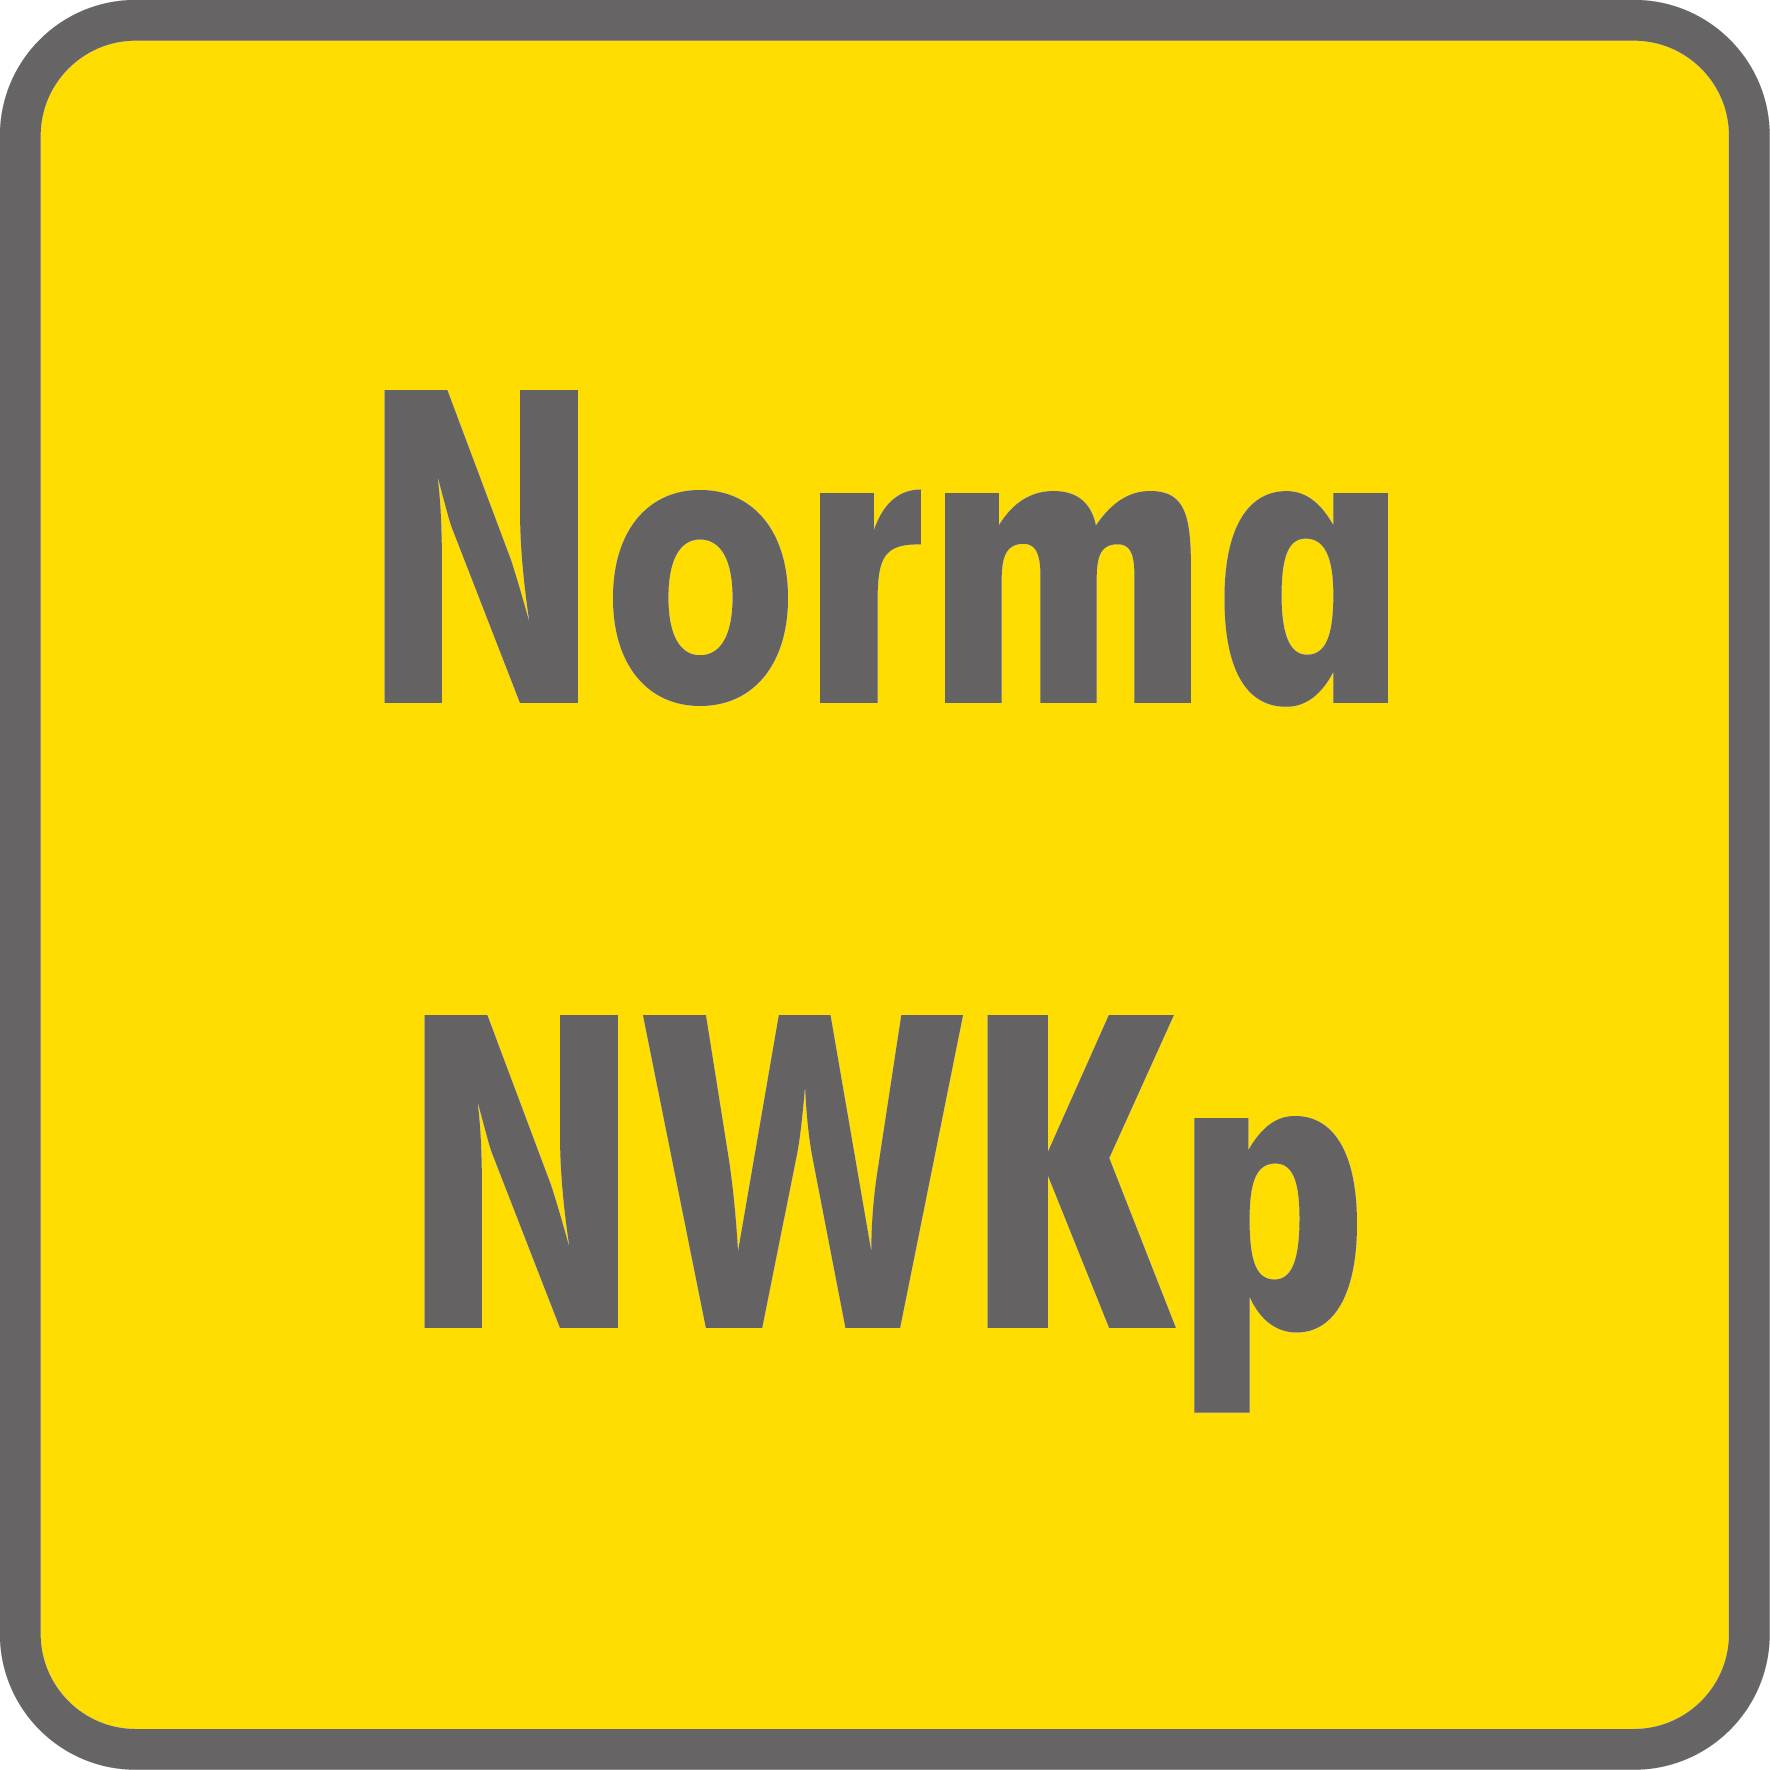 Norma NWKp